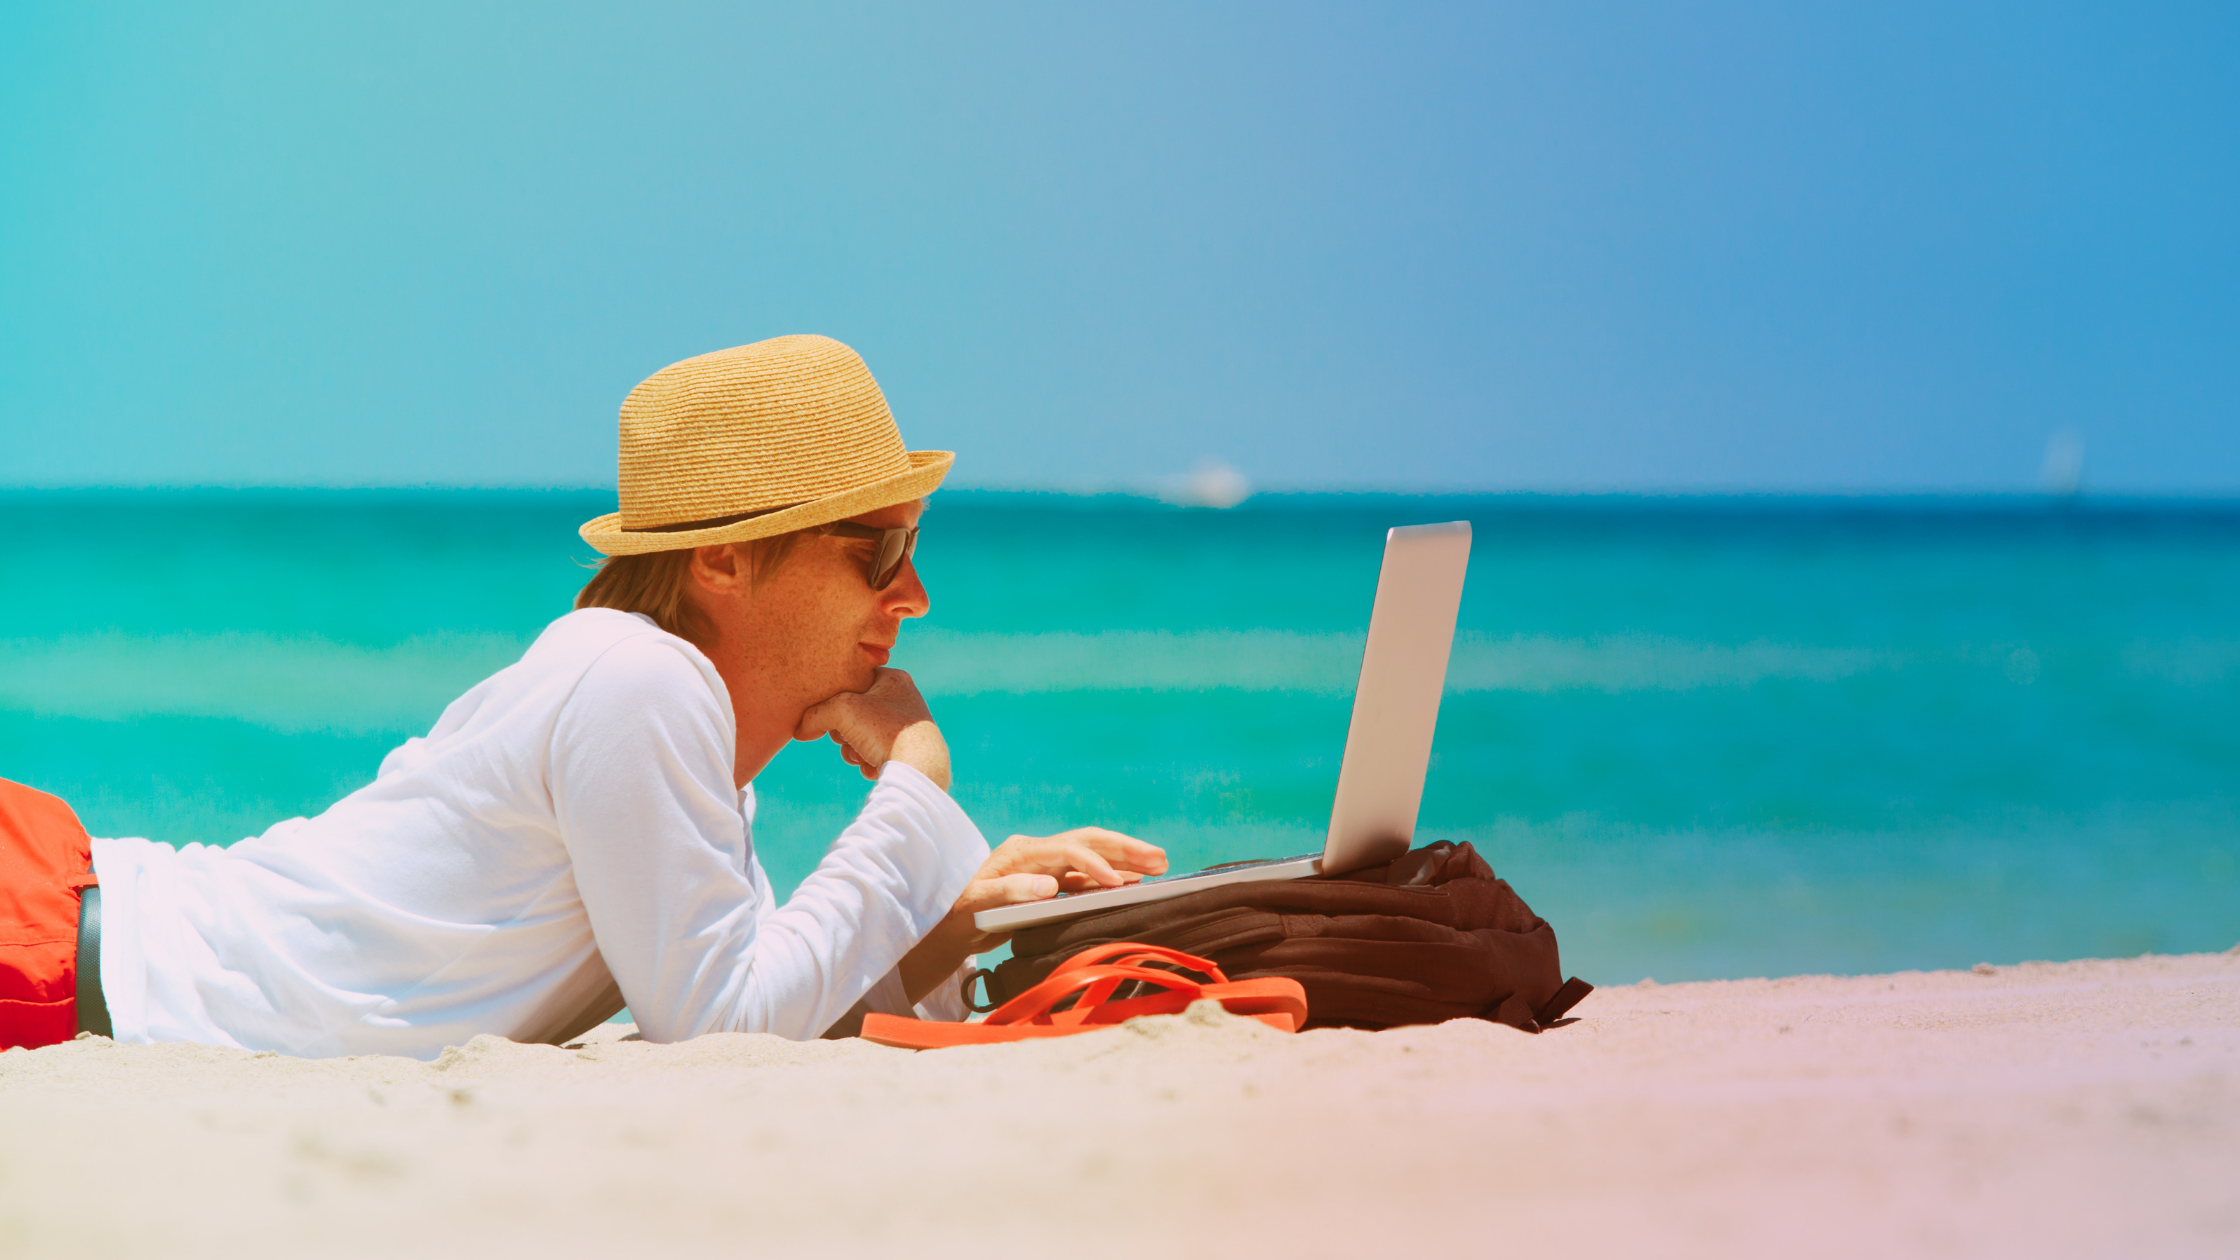 Man works remotely on laptop at the beach